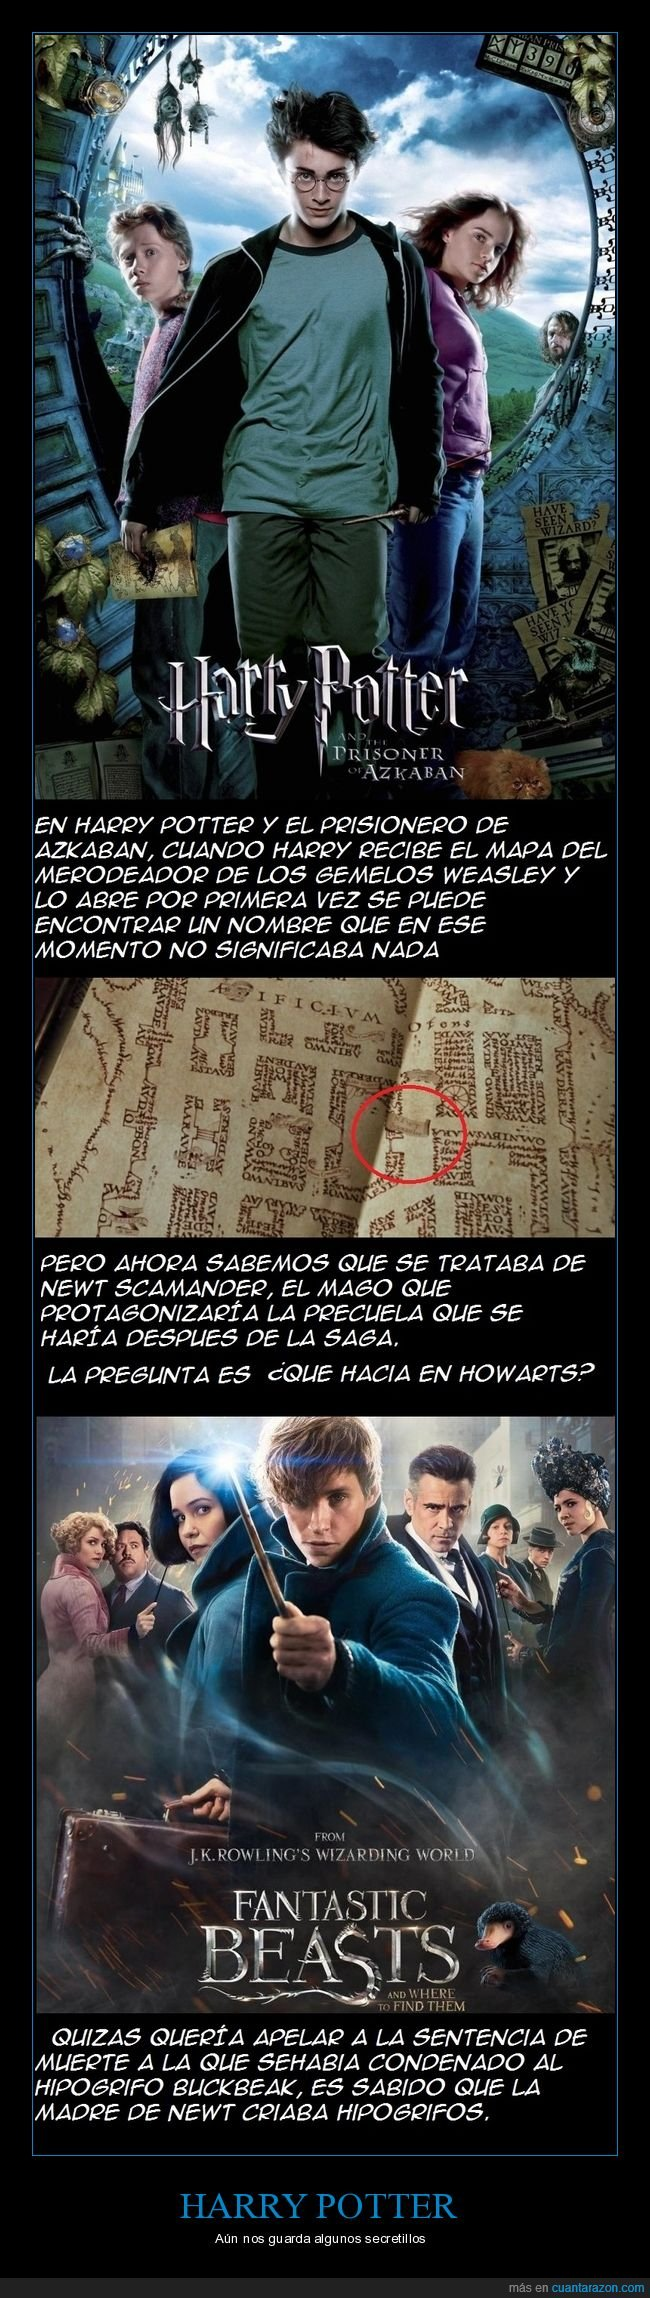 animales fantásticos y dónde encontrarlos,harry potter